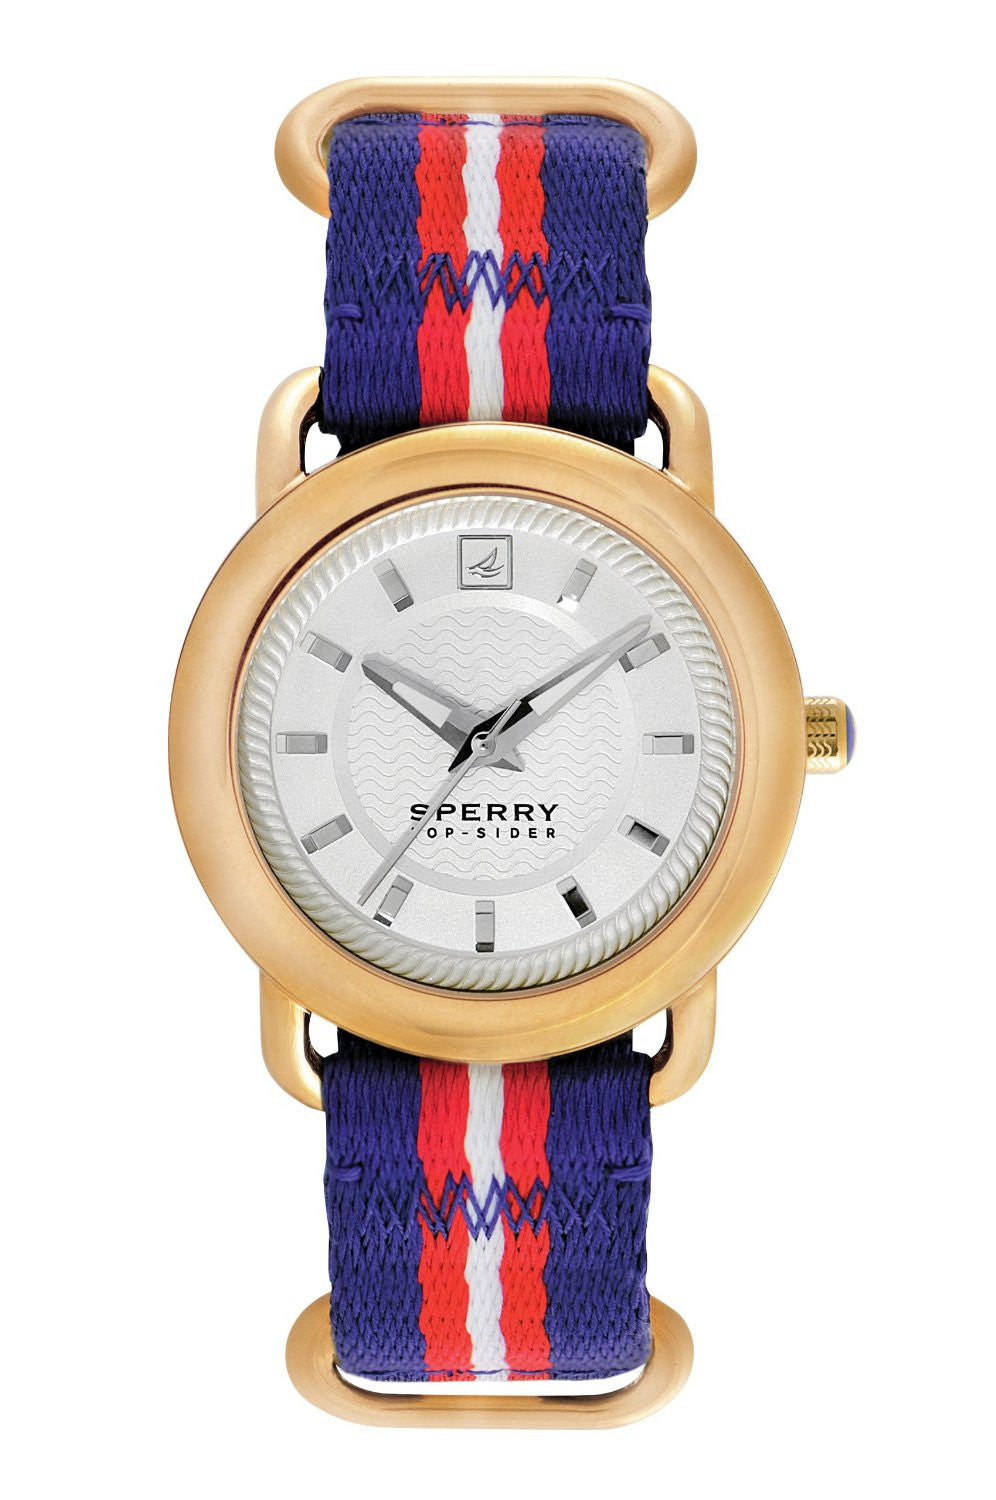 gold inspiration quirkiness occasional was briston in originated lifestyle british yet rose league green house this for preppy great casual and chic chronograph a dial water style that ivy its clubmaster sunray the watches also